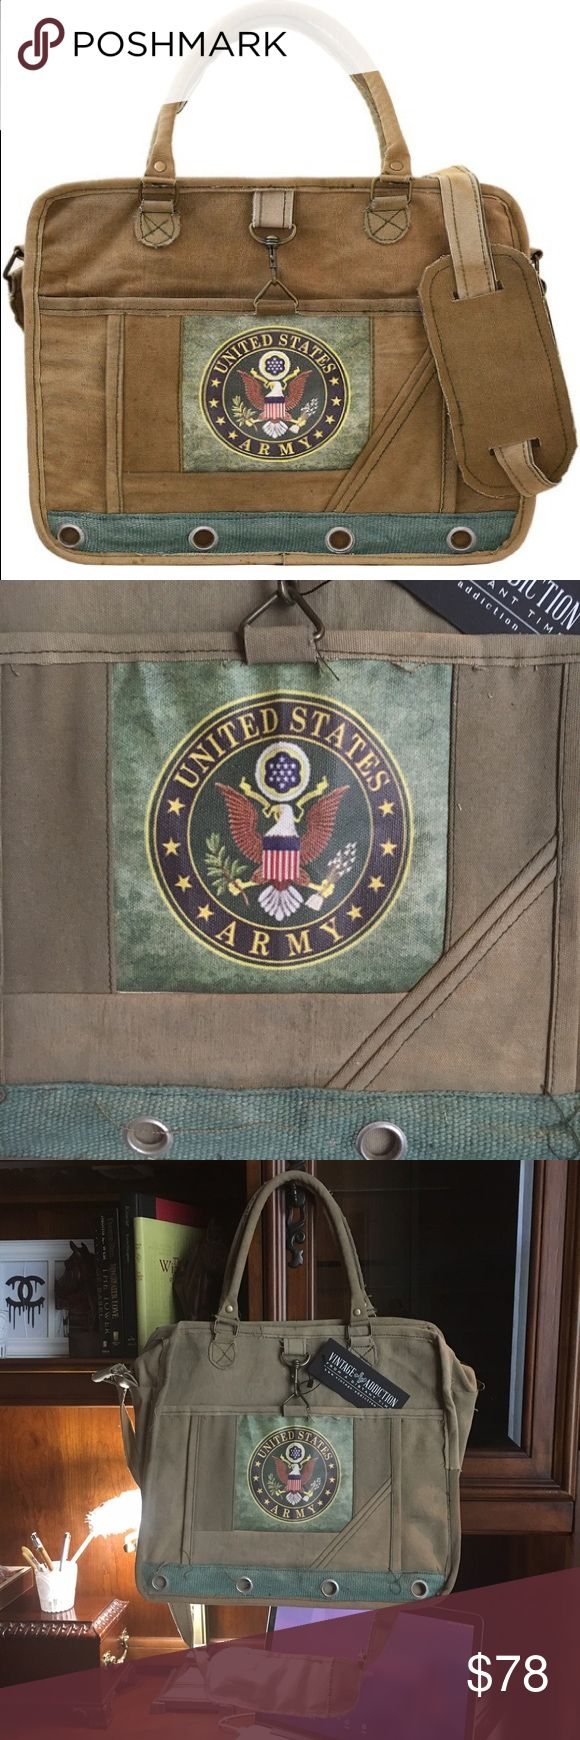 "US Army Laptop Messenger Bag Store your laptop in rustic style with this recycled cotton bag featuring a cushioned insert and ample space for accessories. Note: Due to the manufacturing process and design, each bag is unique. Made with scuff marks individual to each bag to look well loved. Great gift for that soldier in your life or show support for our US Armed Forces. US Army. 16"" W x 14"" H x 5"" D double handles, crossbody strap has 41"" maximum strap length. -Cotton -Zip closure -Exterior…"